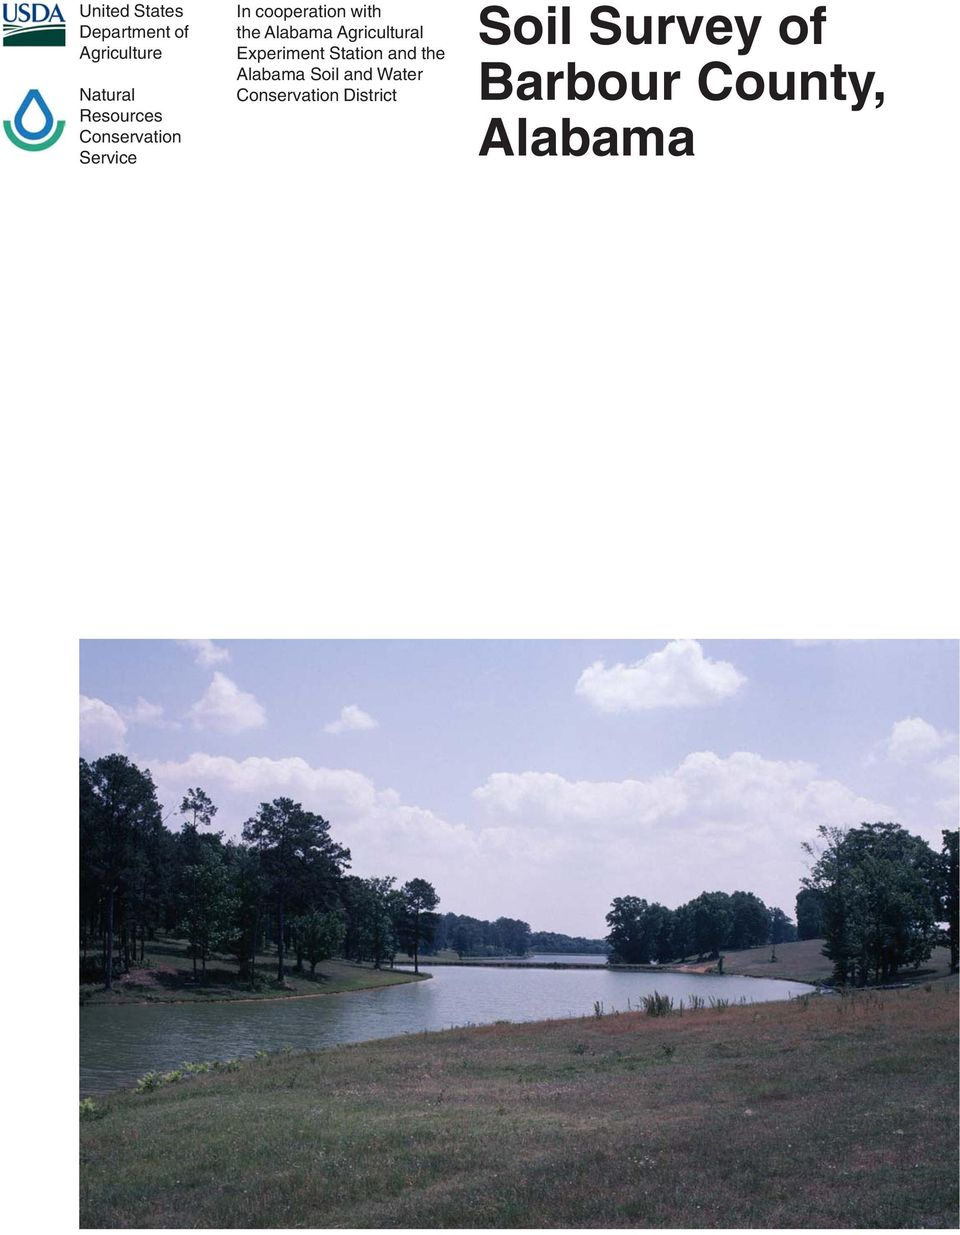 Agricultural Experiment Station and the Alabama Soil and